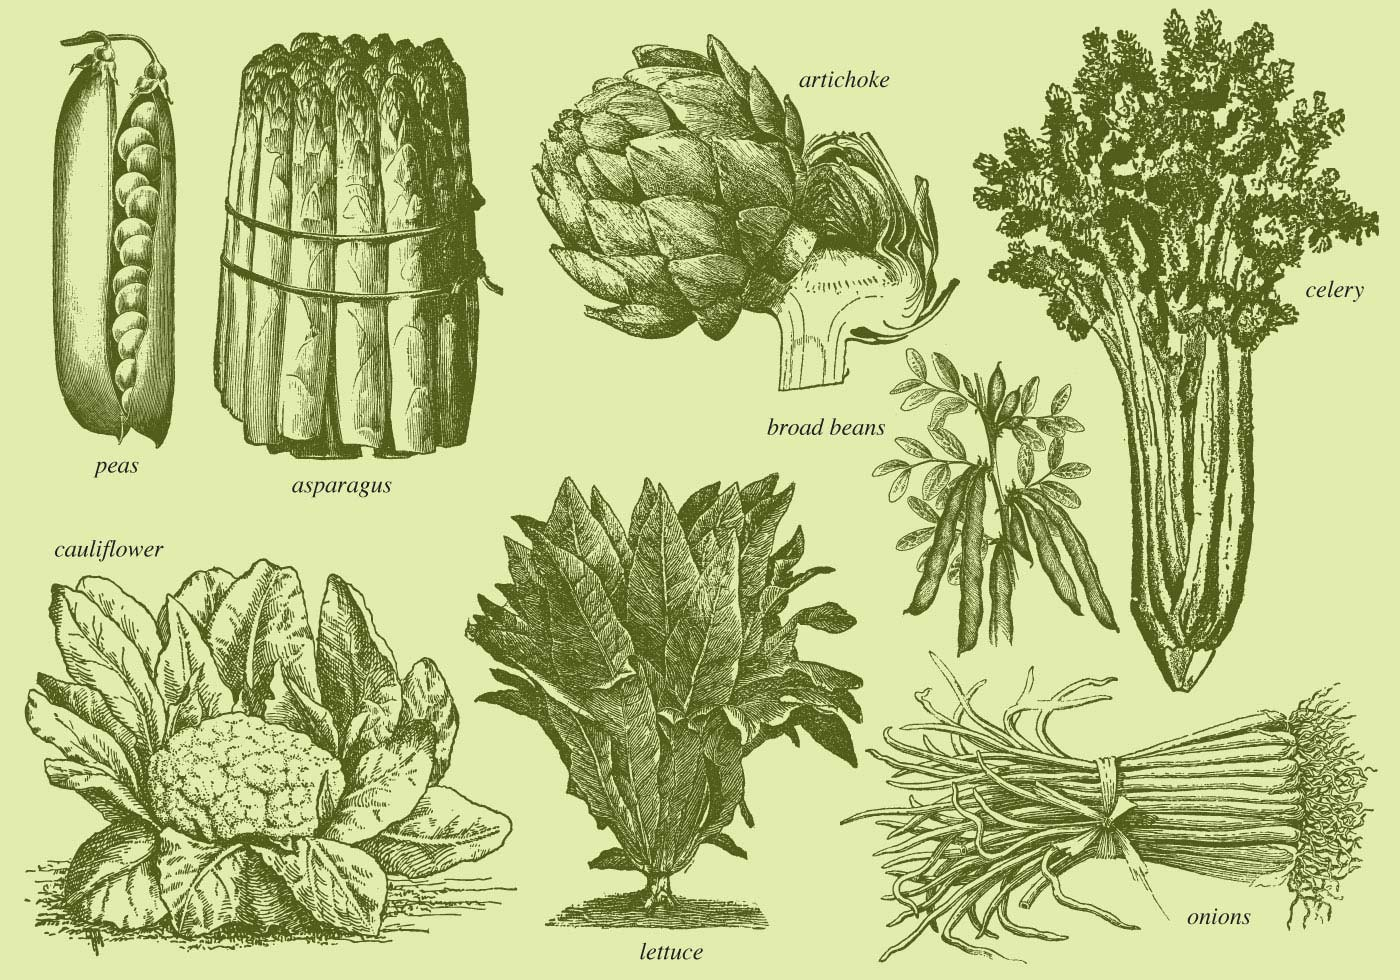 D Line Drawings Vegetables : Old style drawing vegetables download free vector art